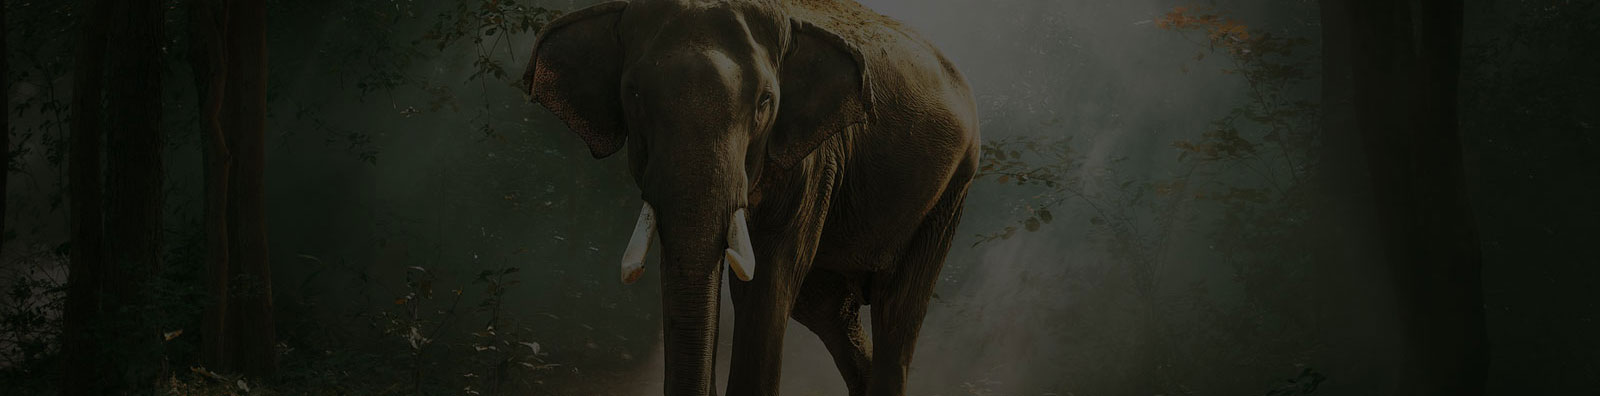 volunteer in thailand elephant projects